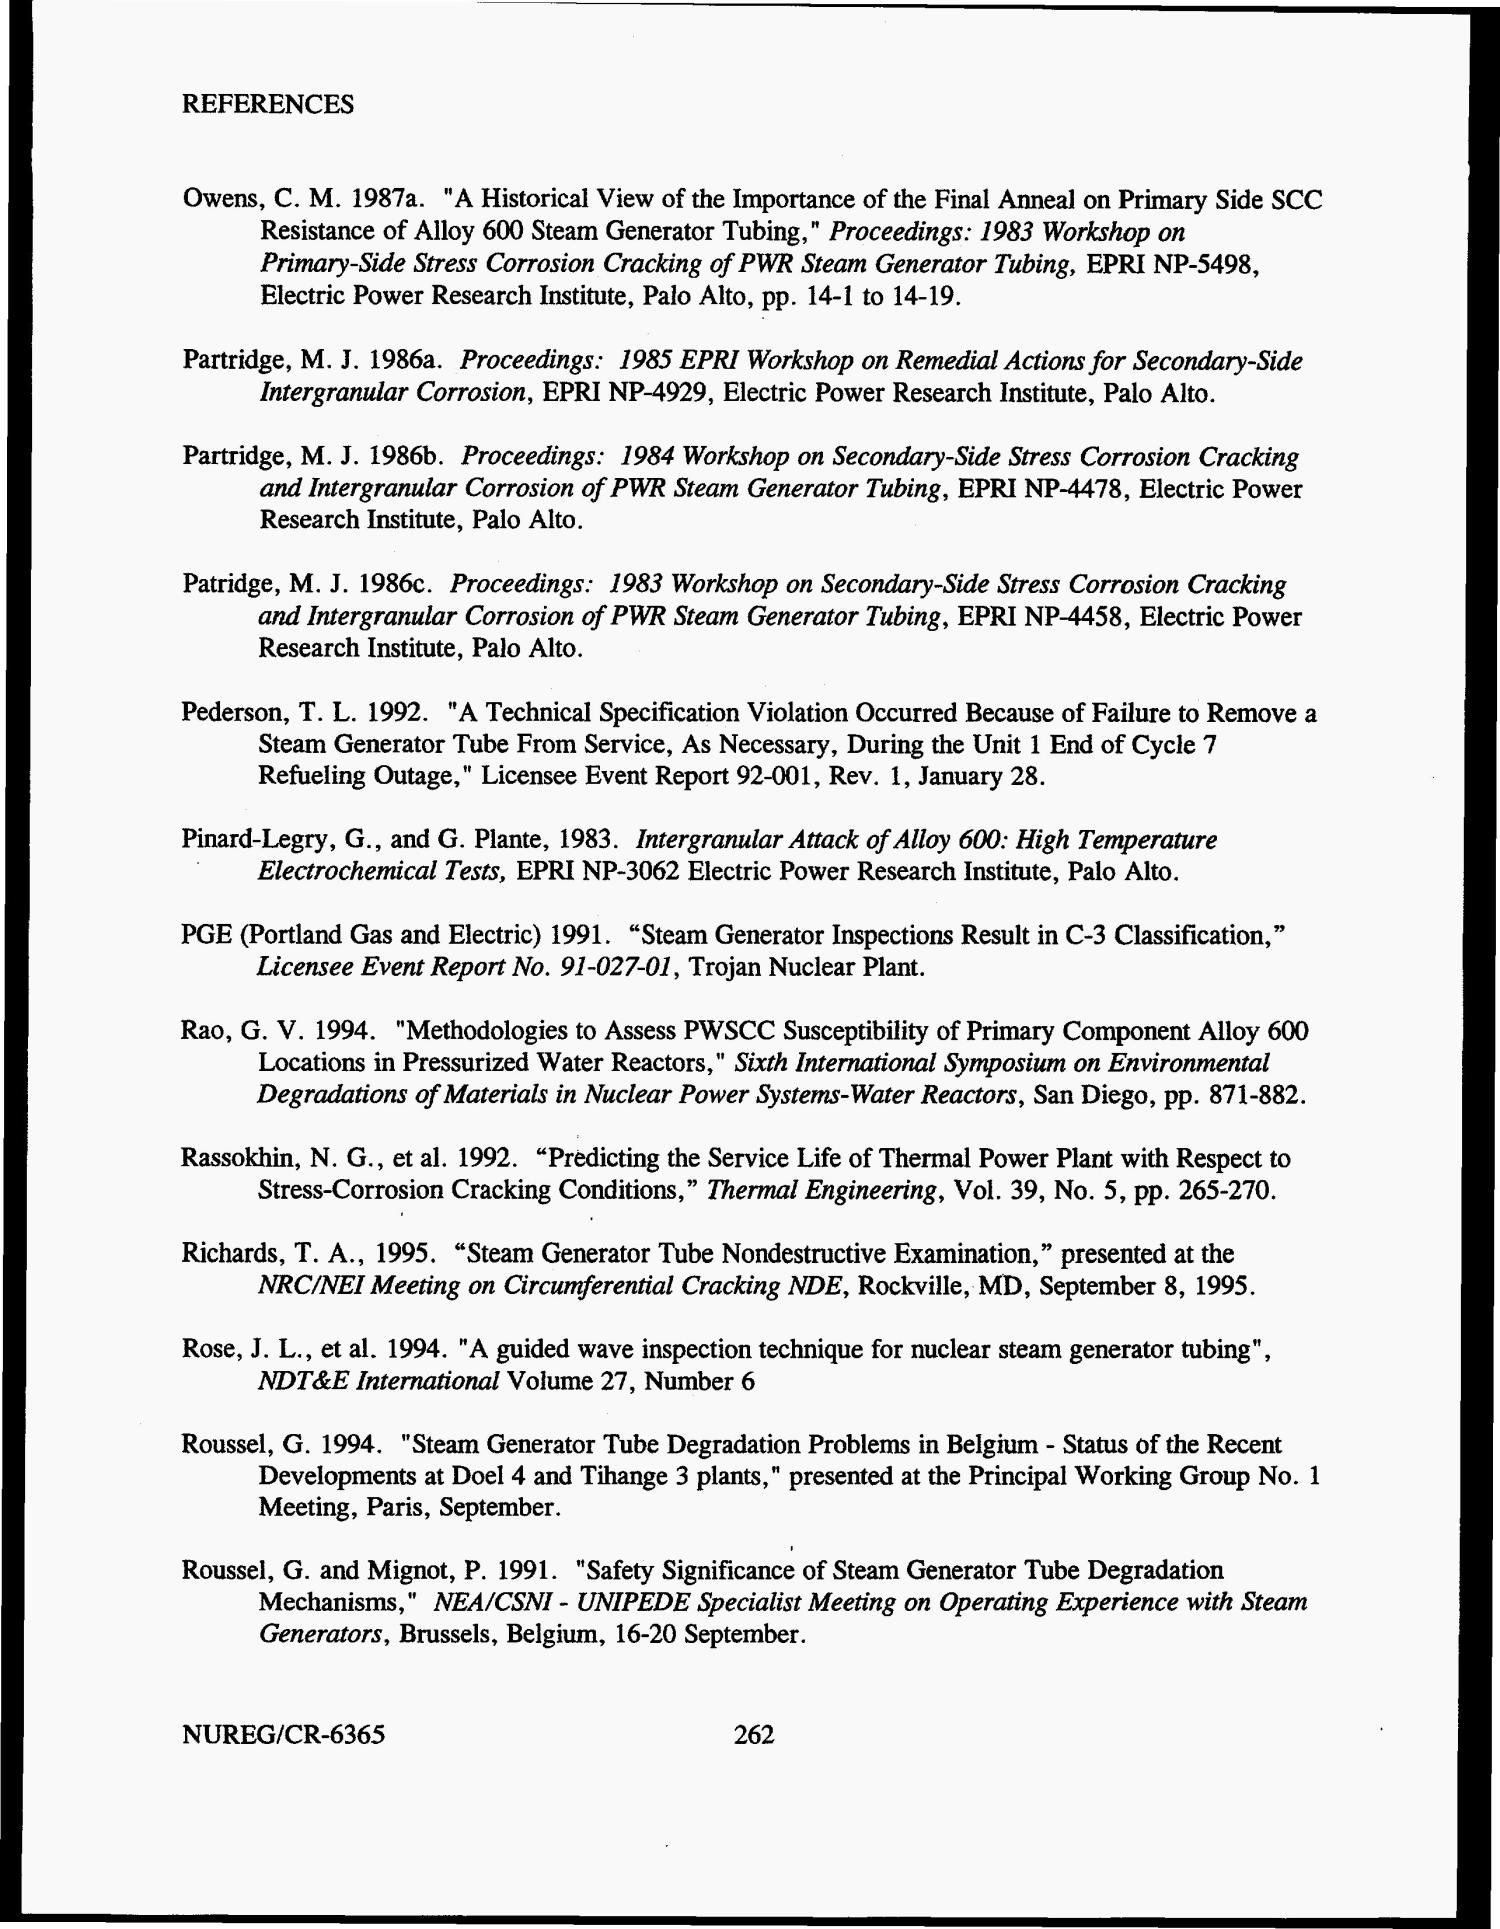 Steam generator tube failures Page 297 of 307 Digital Library